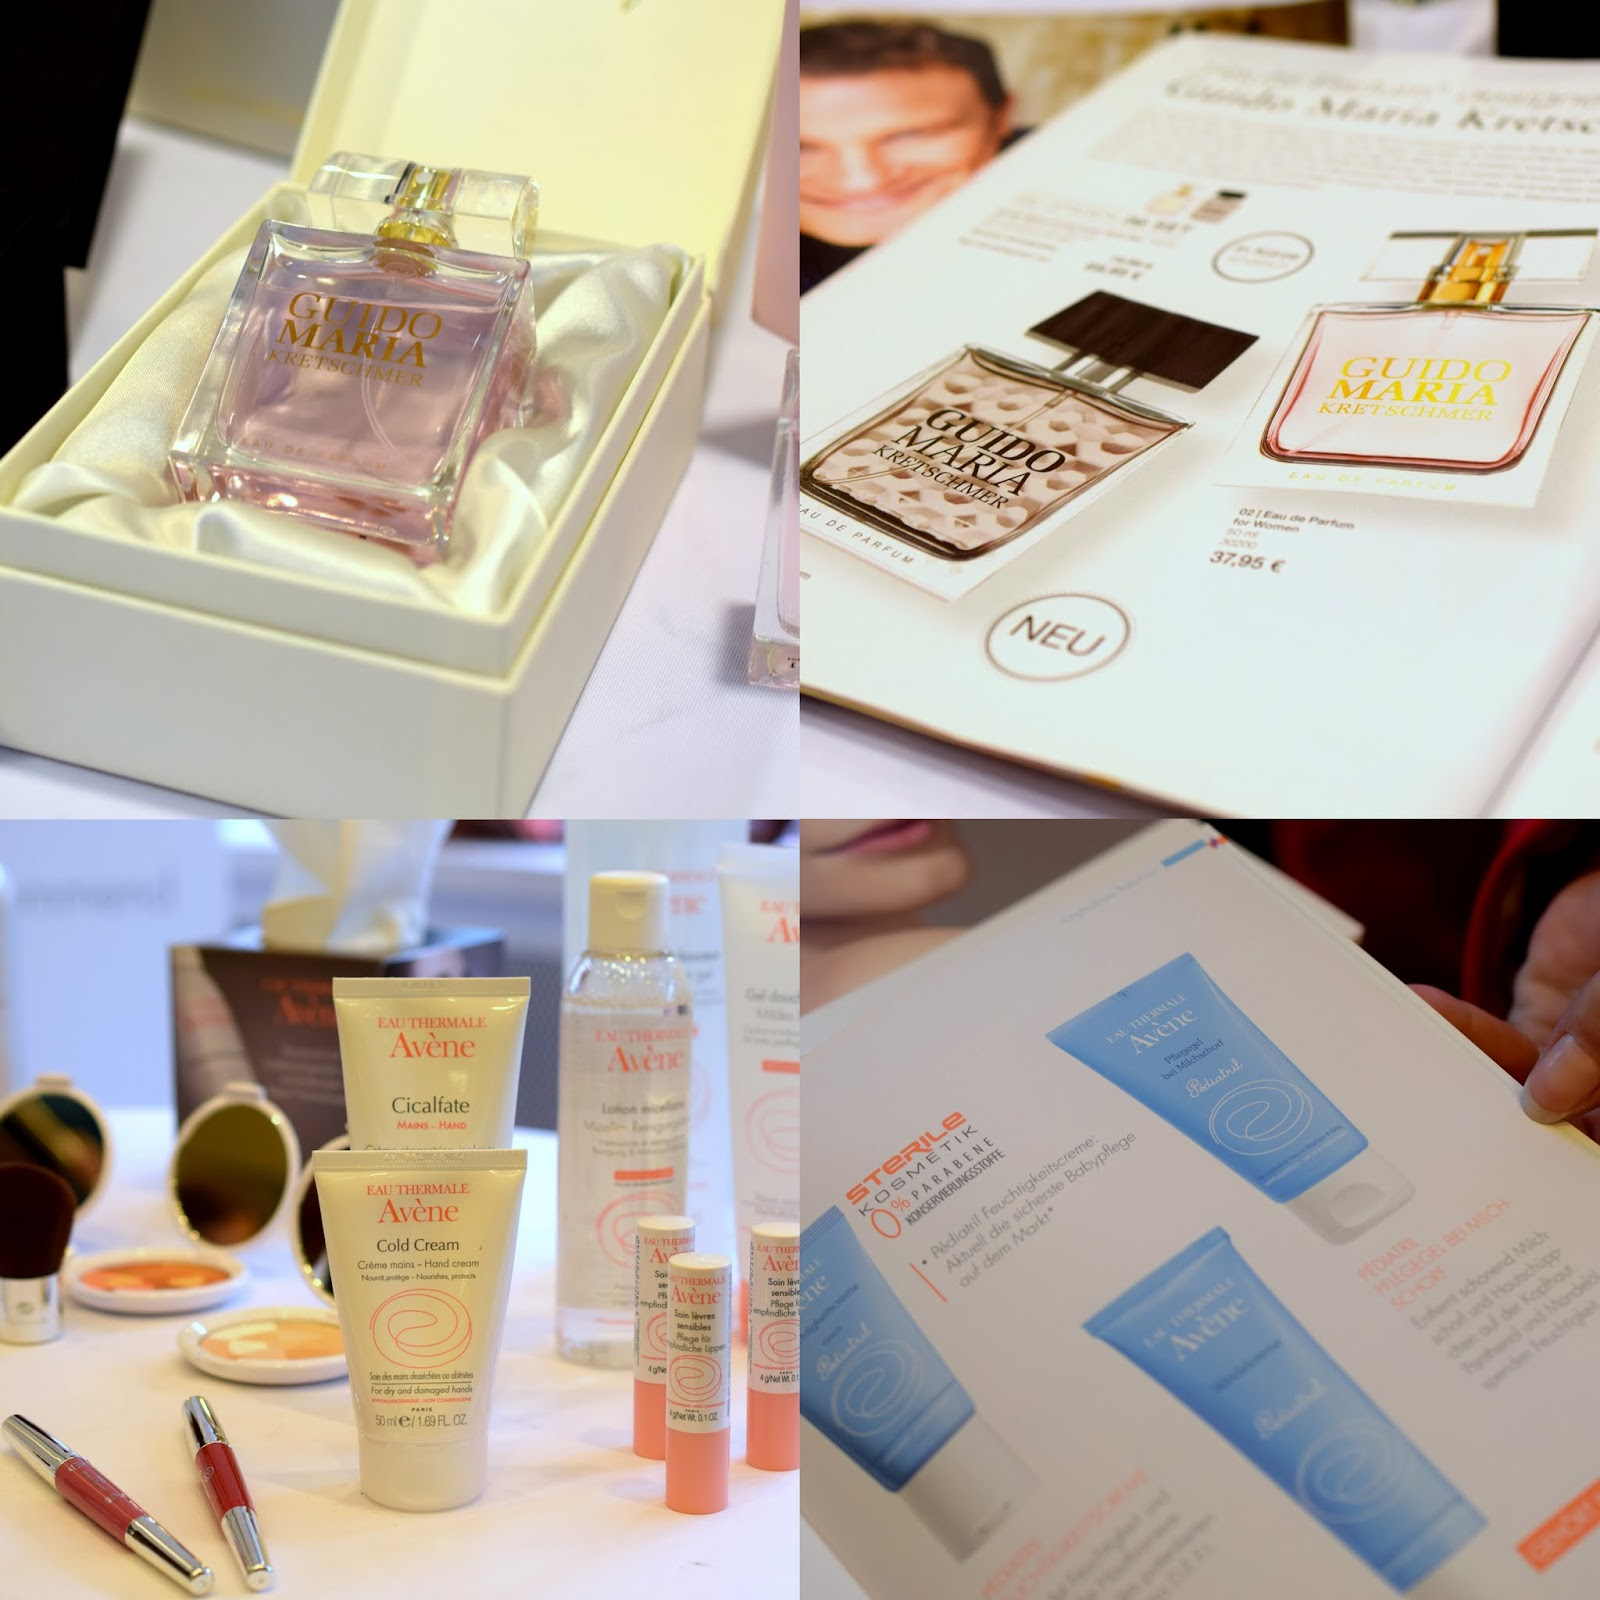 Beautypress Oktober 2015 Eventbericht Avene und LR Beauty